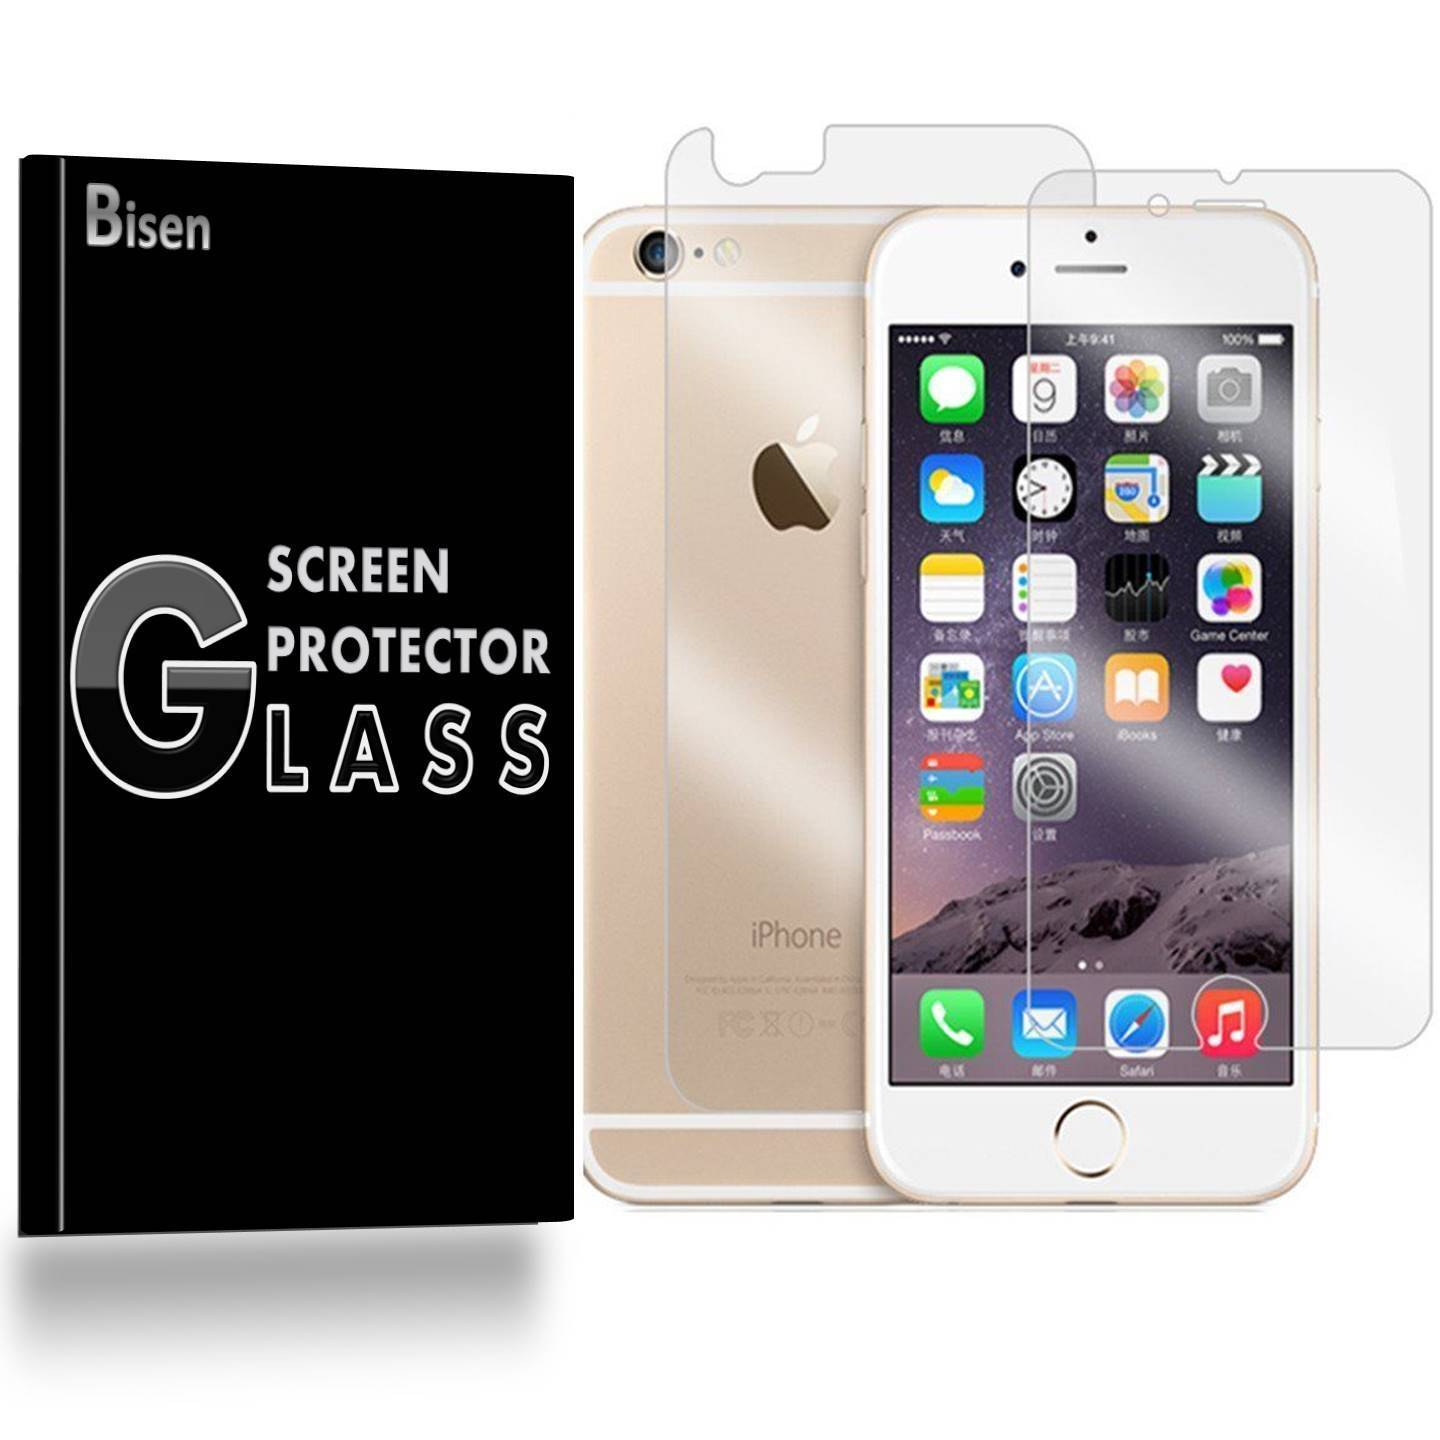 iPhone 6S / iPhone 6 [BISEN] Tempered Glass FULL BODY [Front + Rear] Screen Protector, Anti-Scratch, Anti-Shock, Shatterproof, Bubble Free